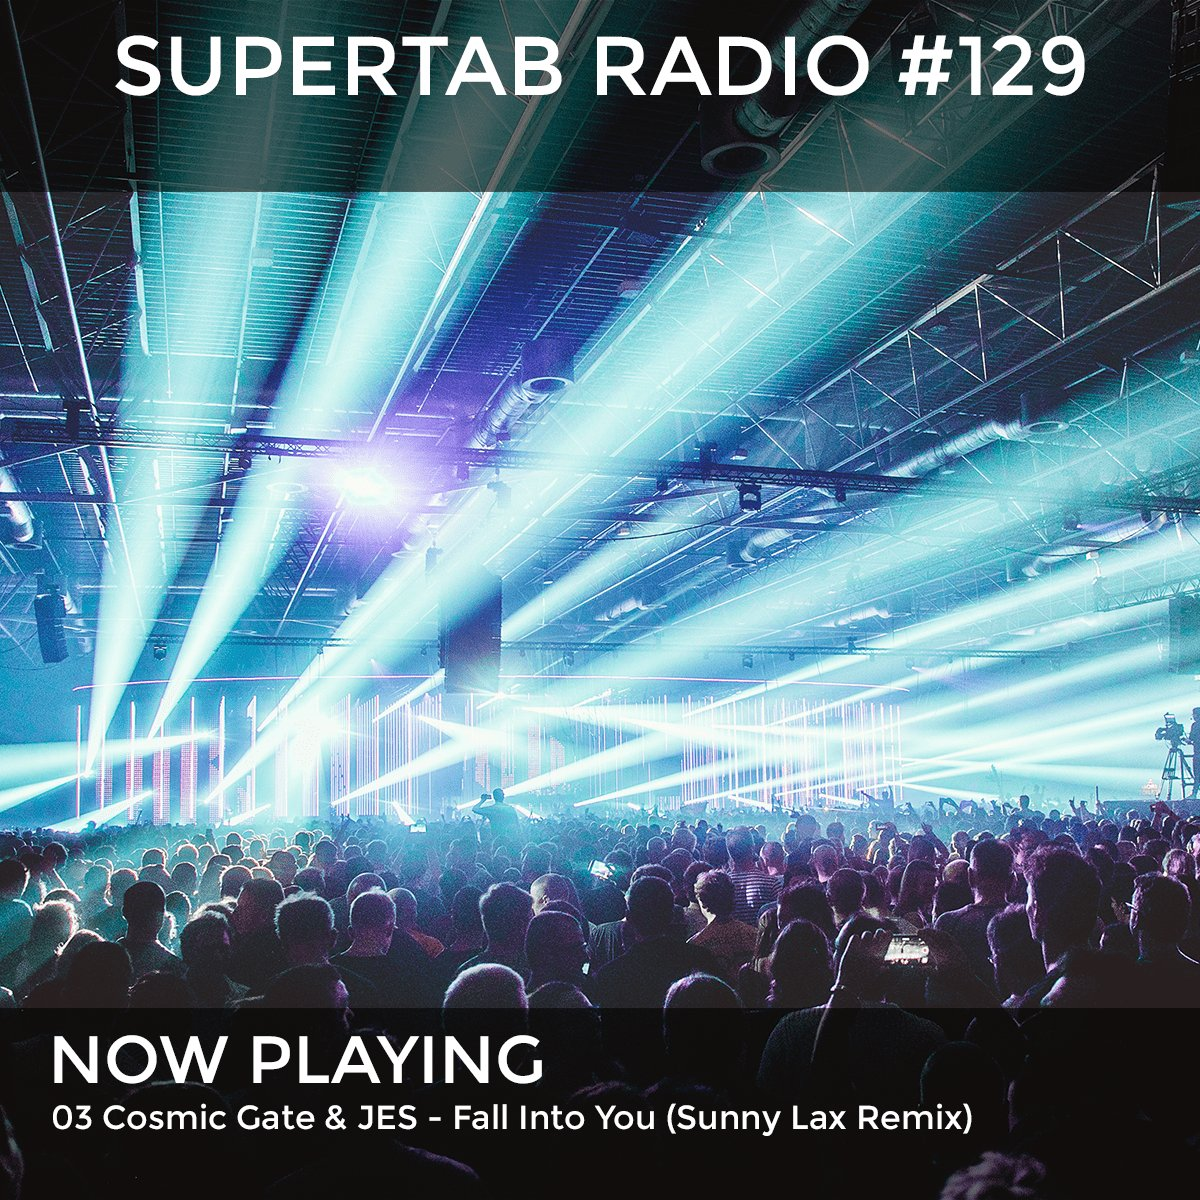 03 @cosmicgate & @Official_JES - Fall Into You (@sunnylax Remix) @WakeYourMindRecords #SuperTab129 https://t.co/dTAVOjNEwM